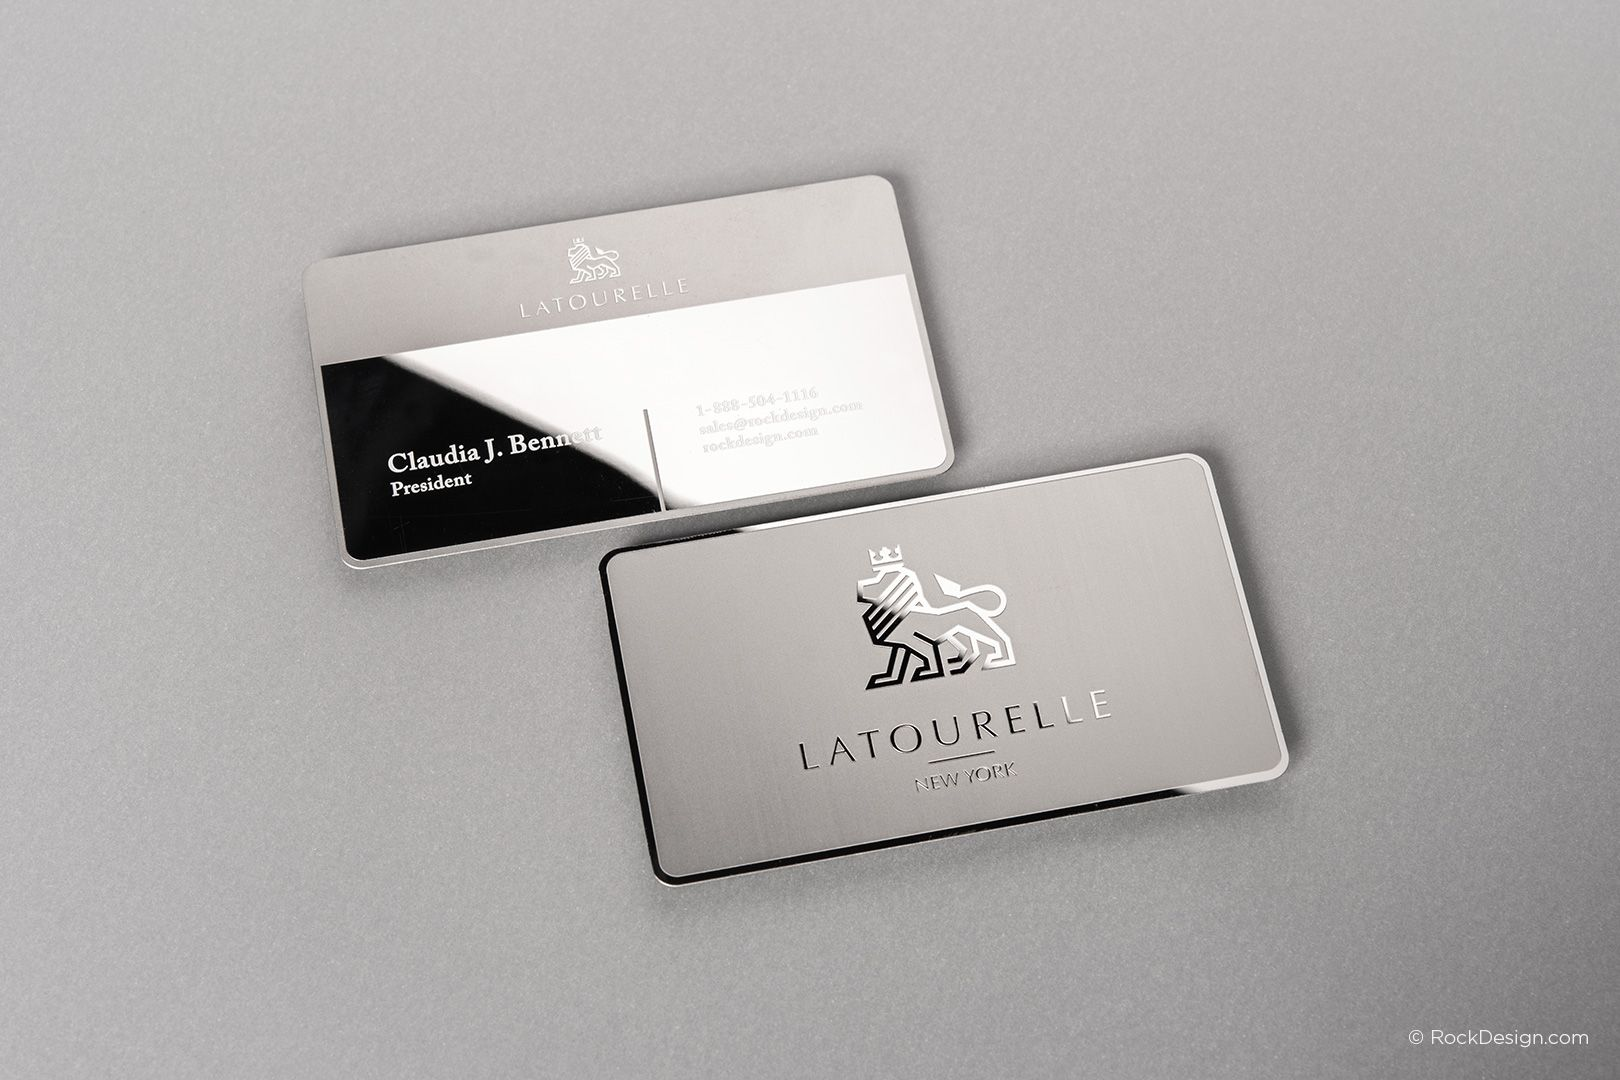 Sophisticated Modern Stainless Steel Business Card With Etching And Mirror Finish Latourelle Metal Business Cards Lawyer Business Card Luxury Business Cards